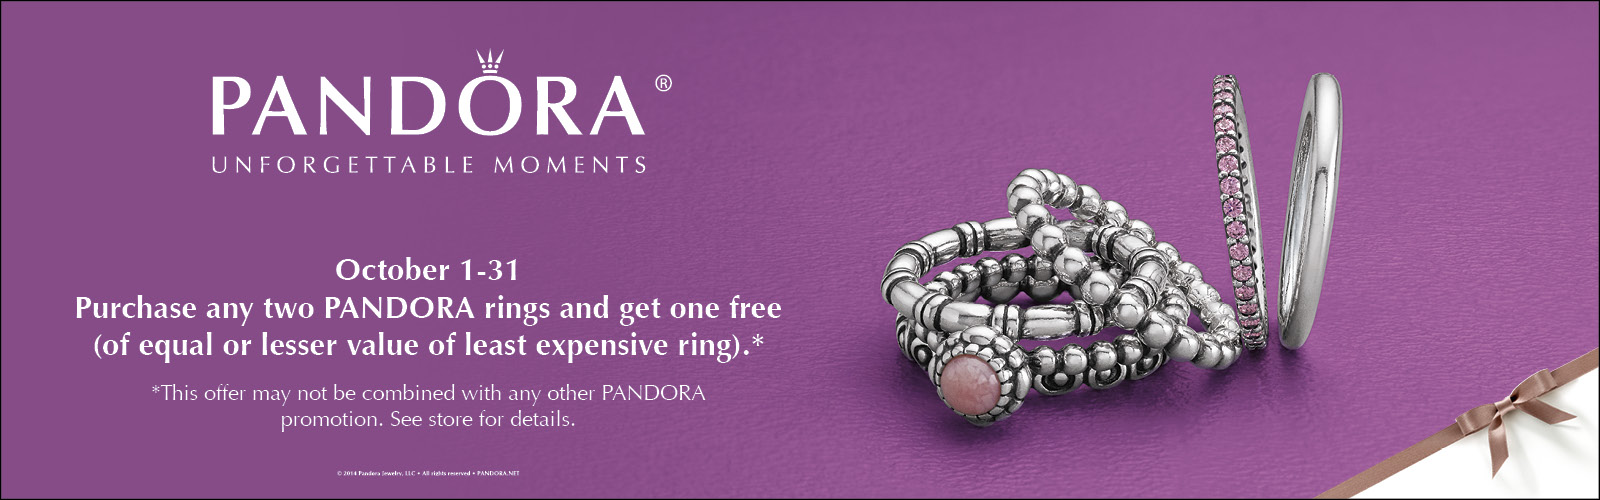 Pandora October Ring Event 2014